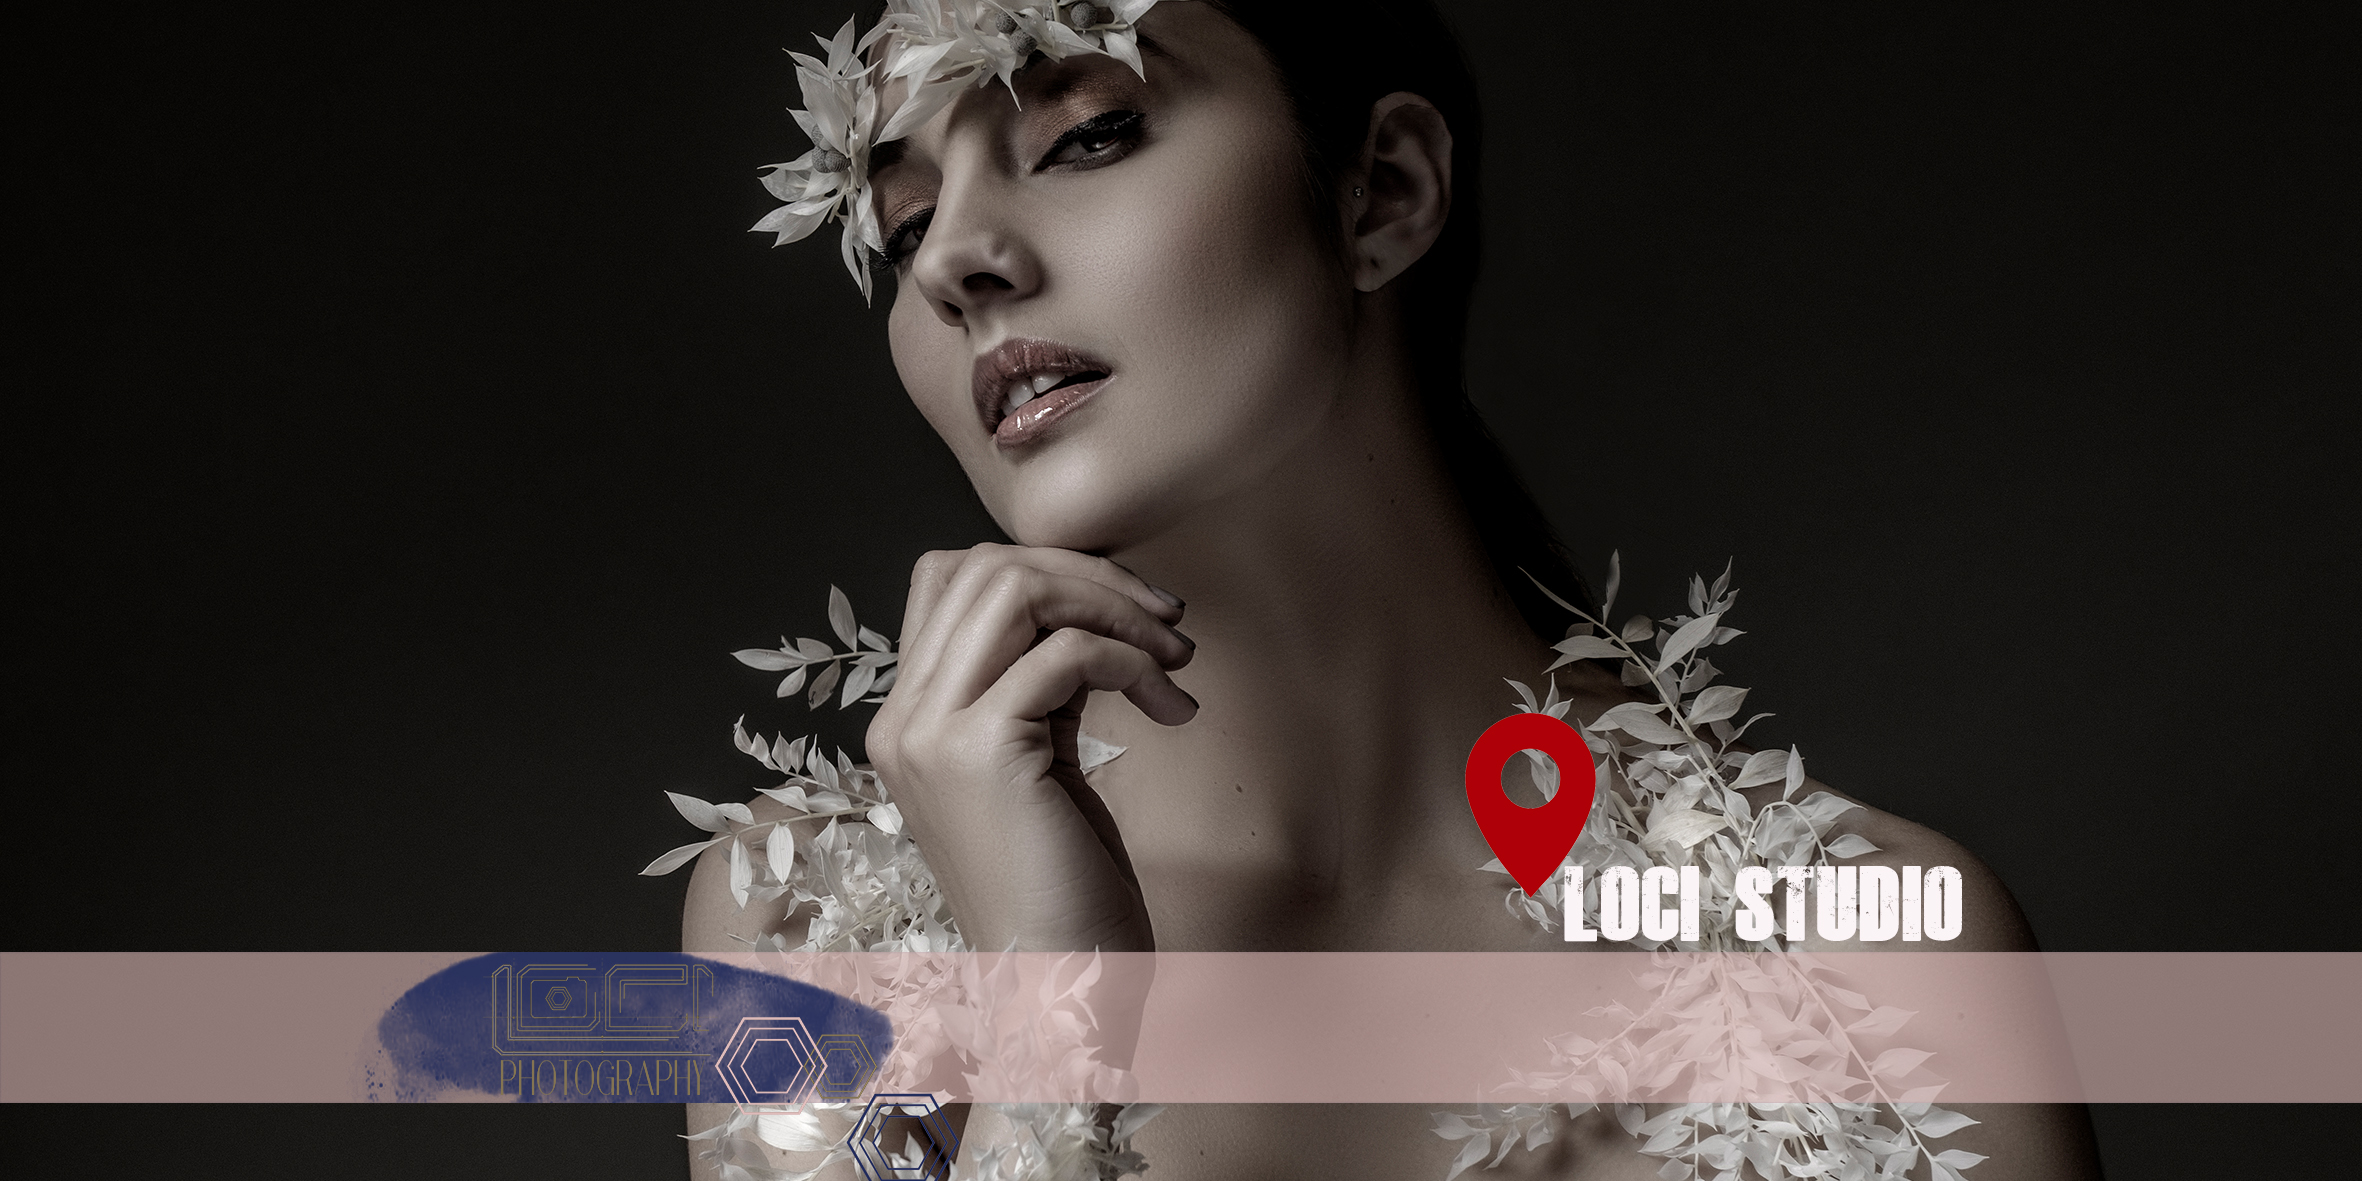 Getting creative, collaborating in studio with other creatives and Loci Photography